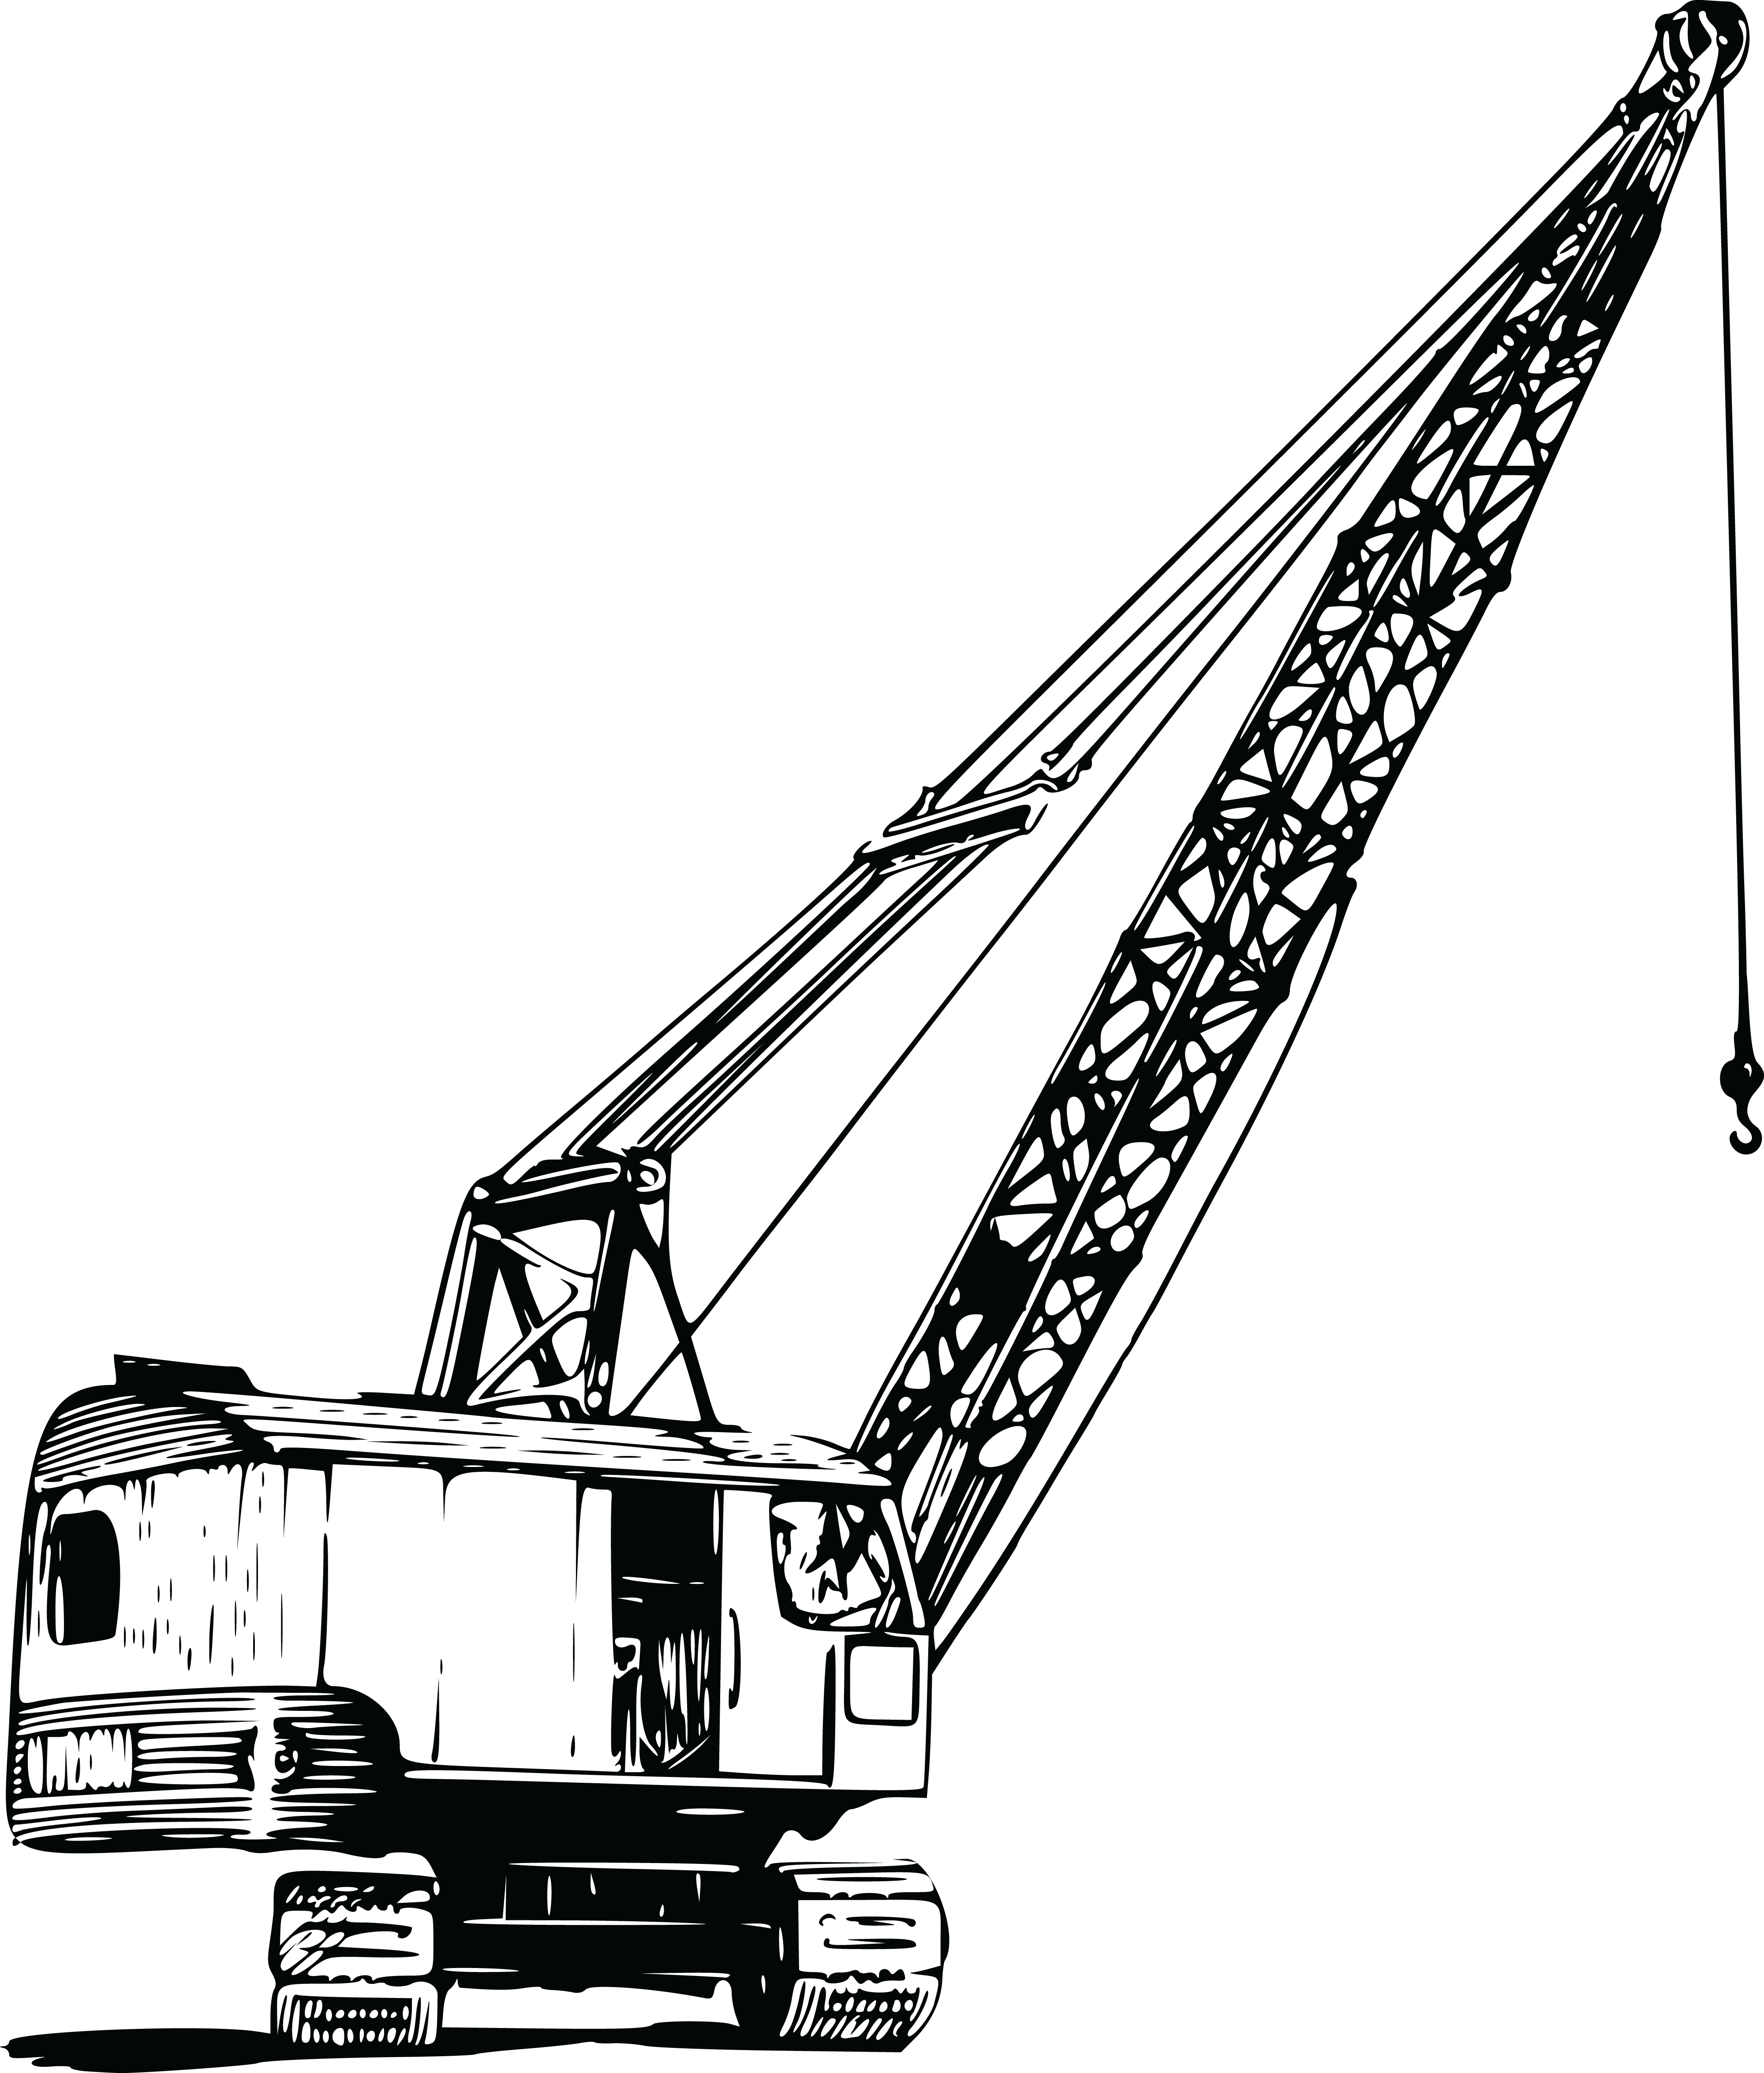 Cranes at getdrawings com. Planning clipart construction drawing